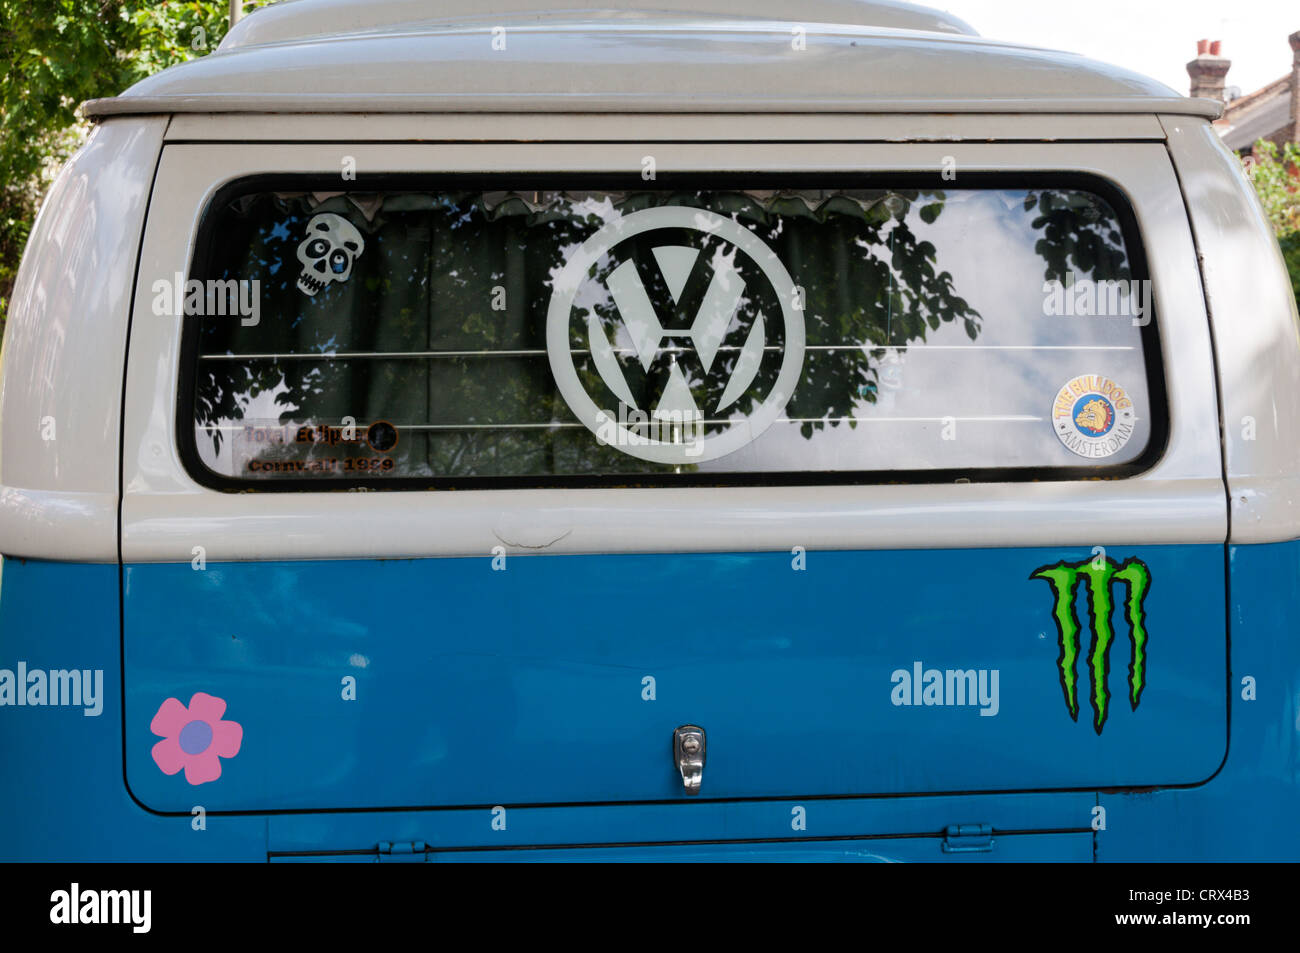 The rear of a 1970 Volkswagen VW Campervan. - Stock Image